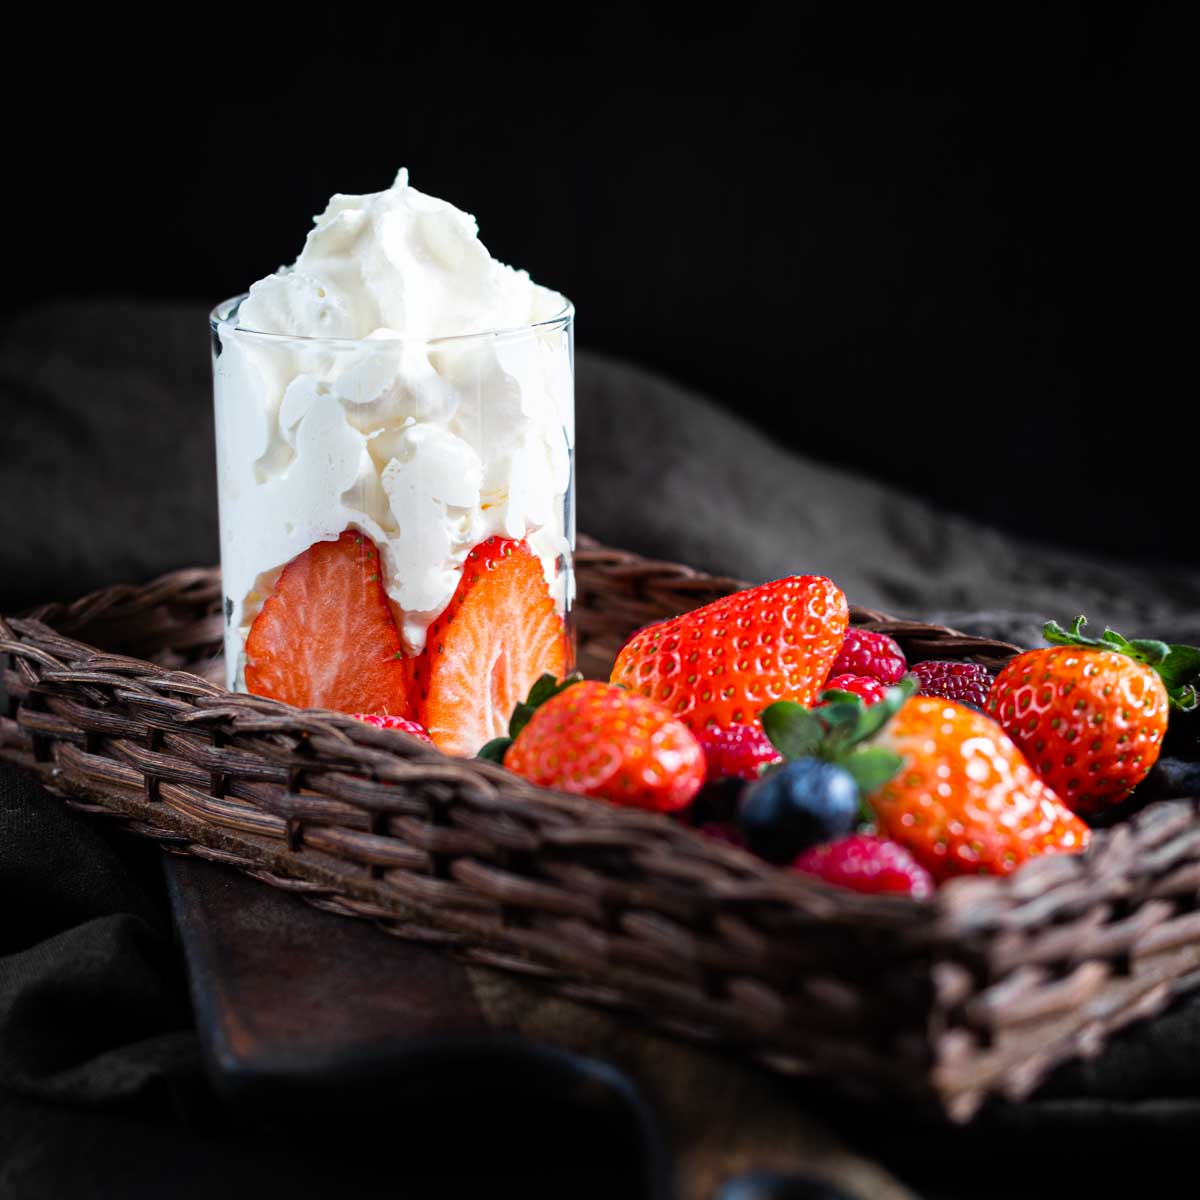 Whipped Cream Without Sugar with berries in a basket